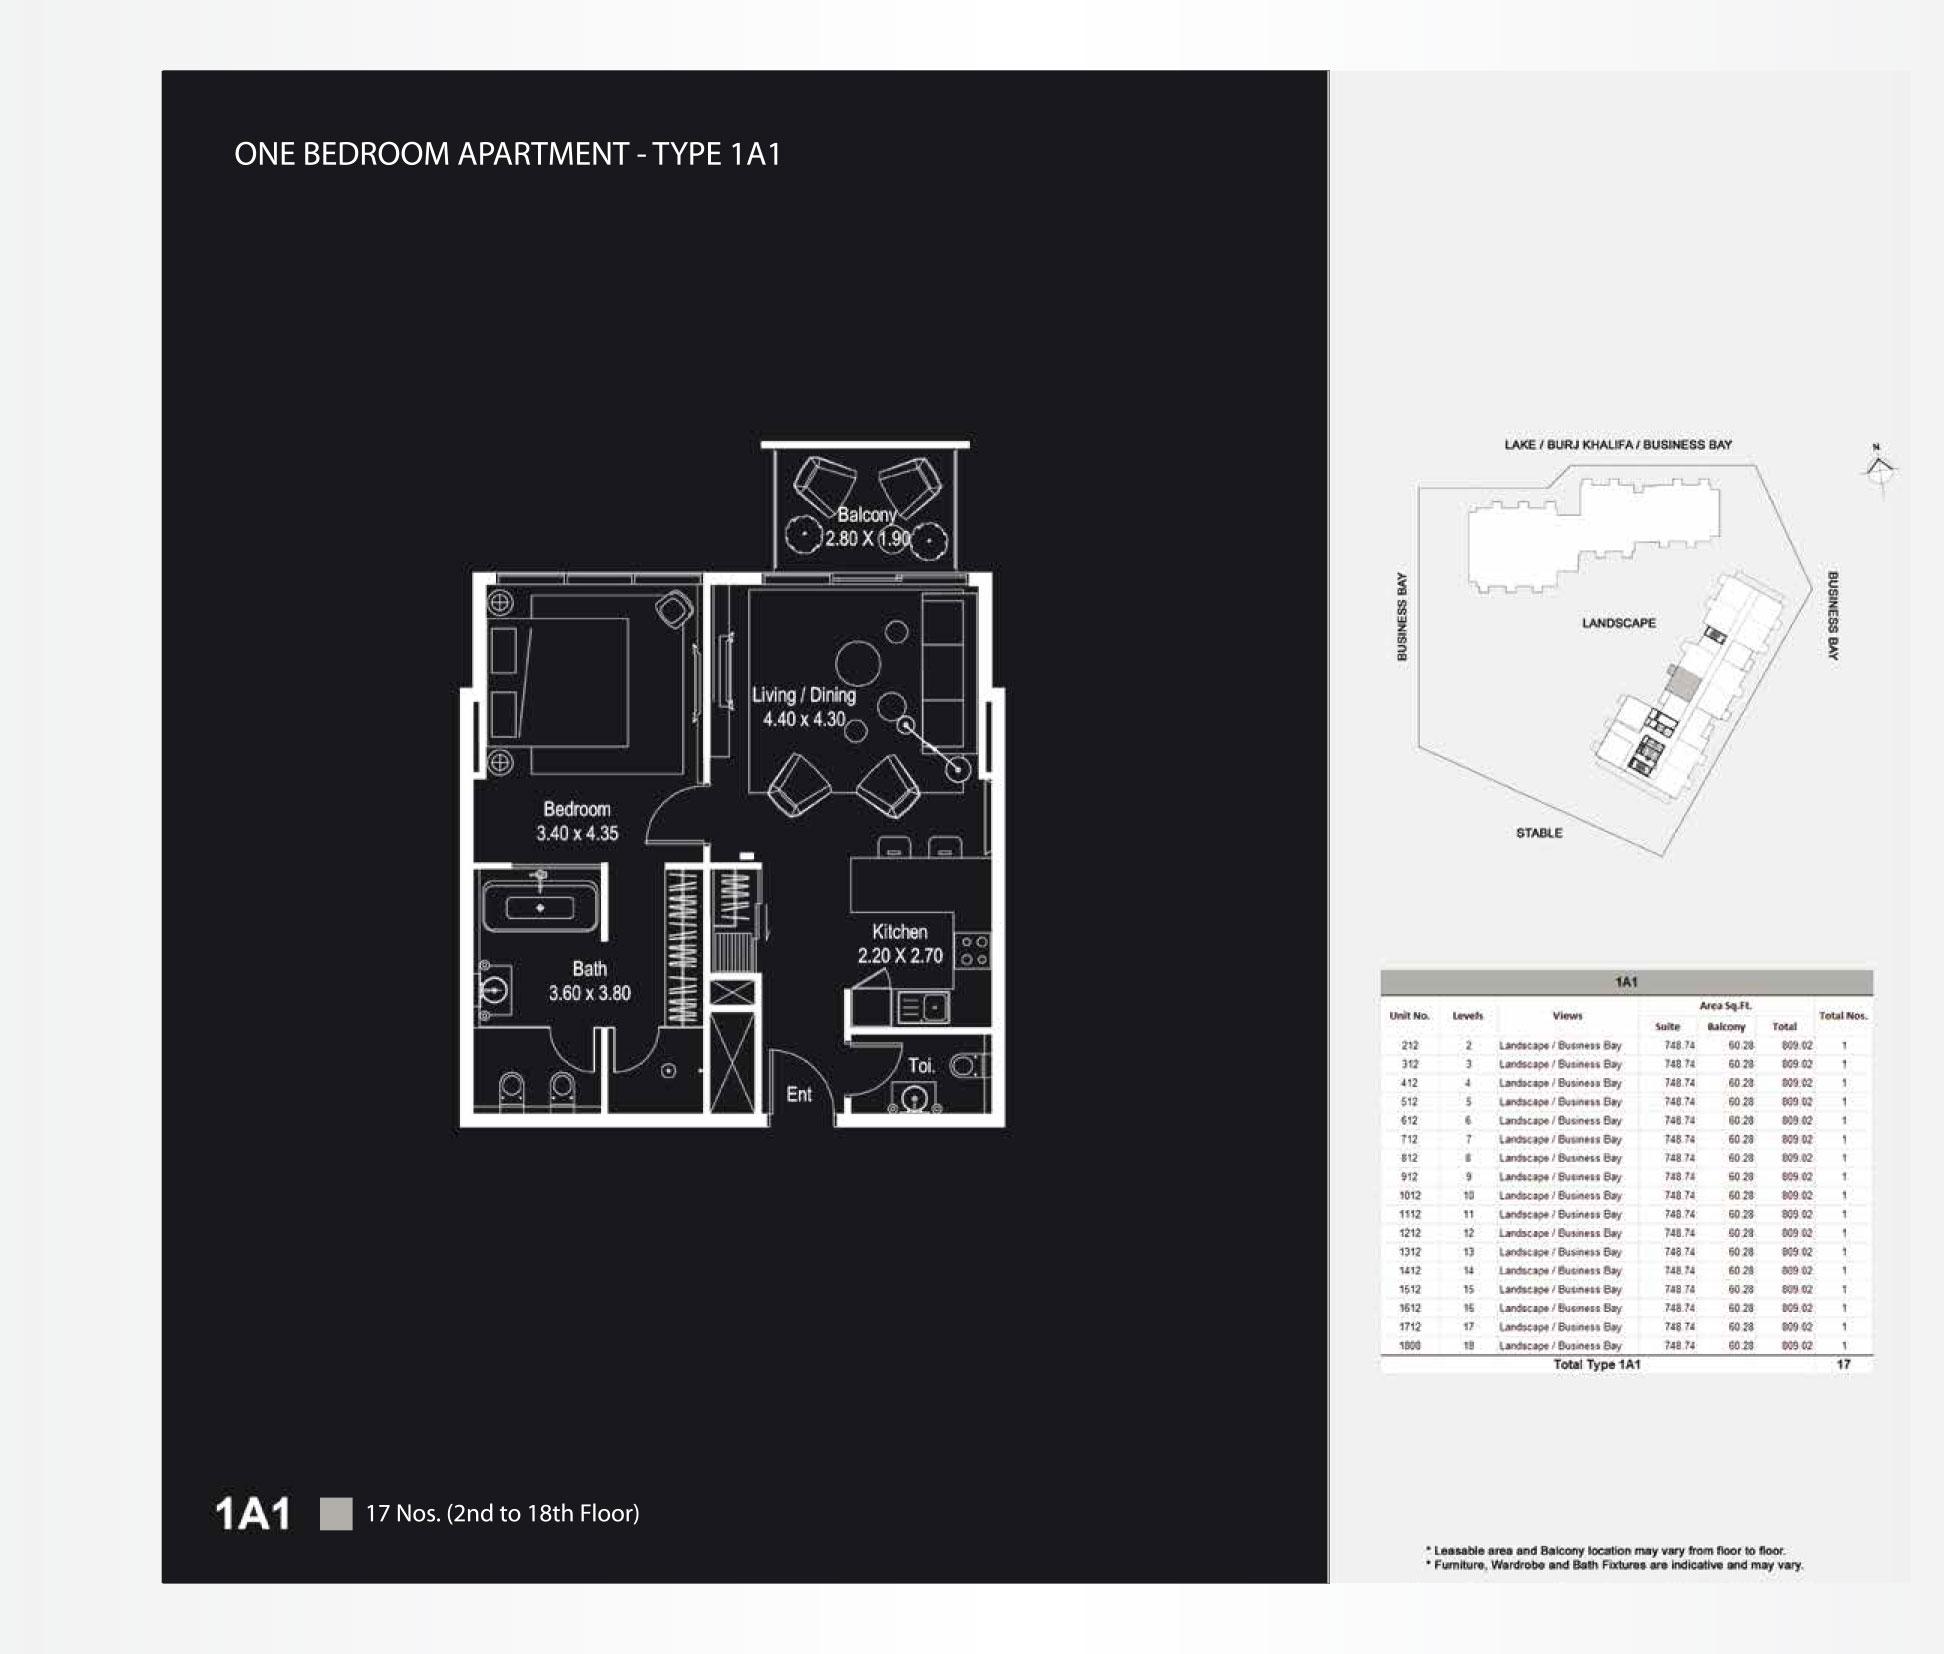 1 Bedroom Apartments Type 1A1 - 809.02